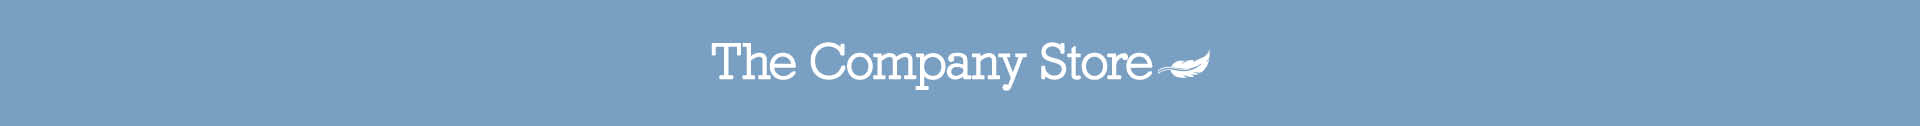 The Company Store Banner